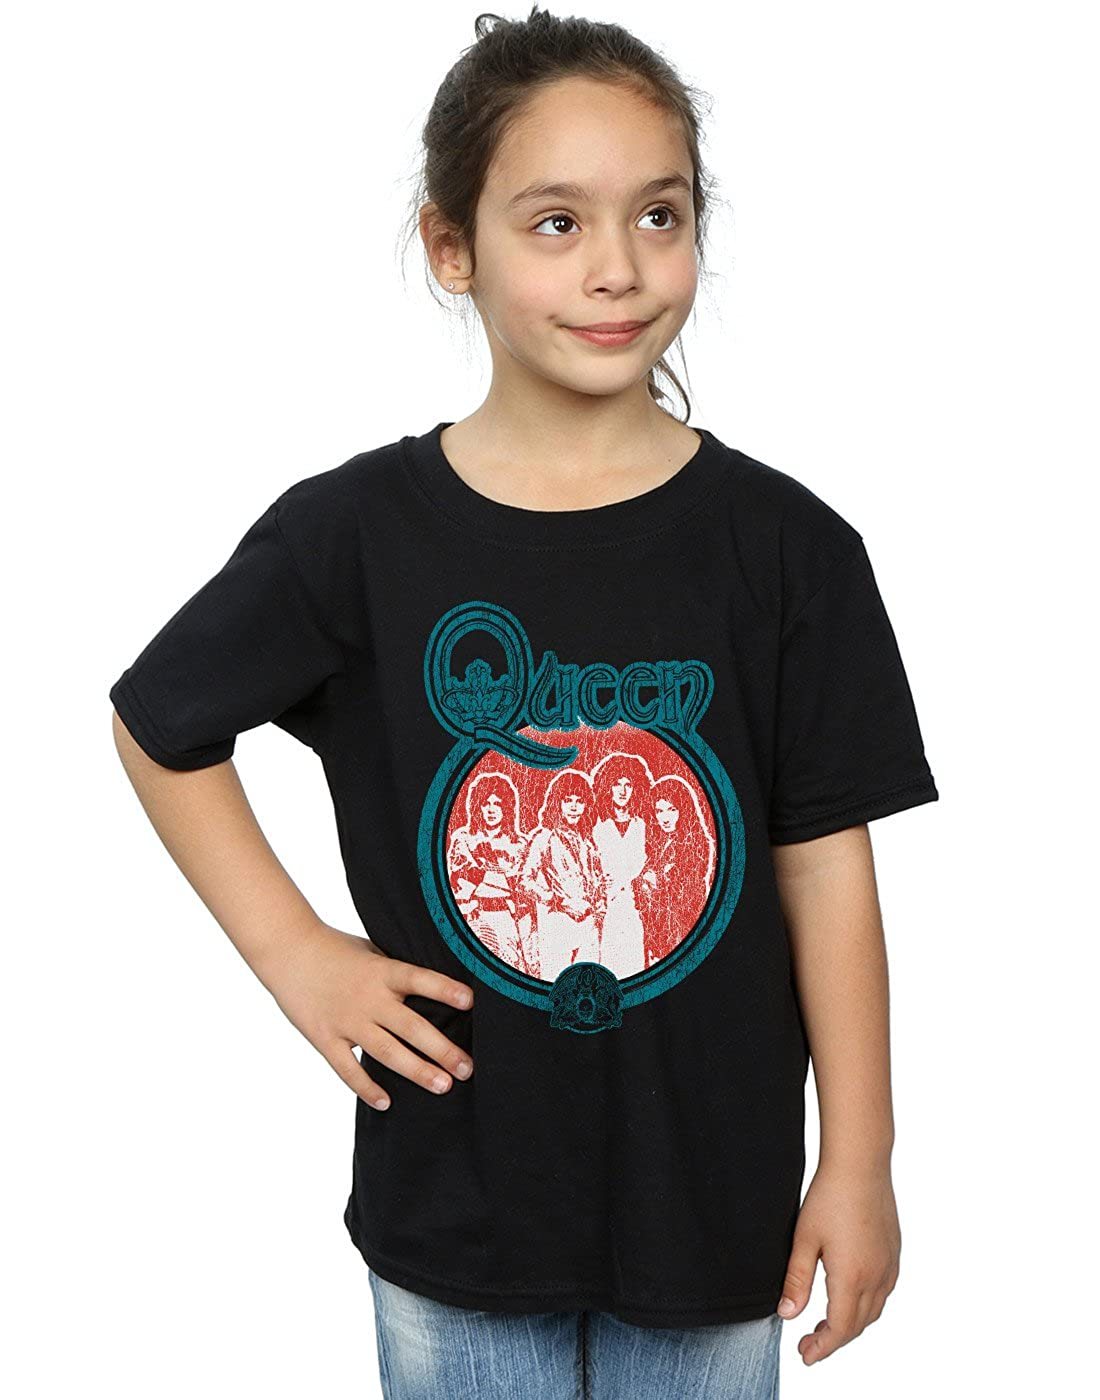 Absolute Cult Queen Girls Vintage Band Photo T-Shirt